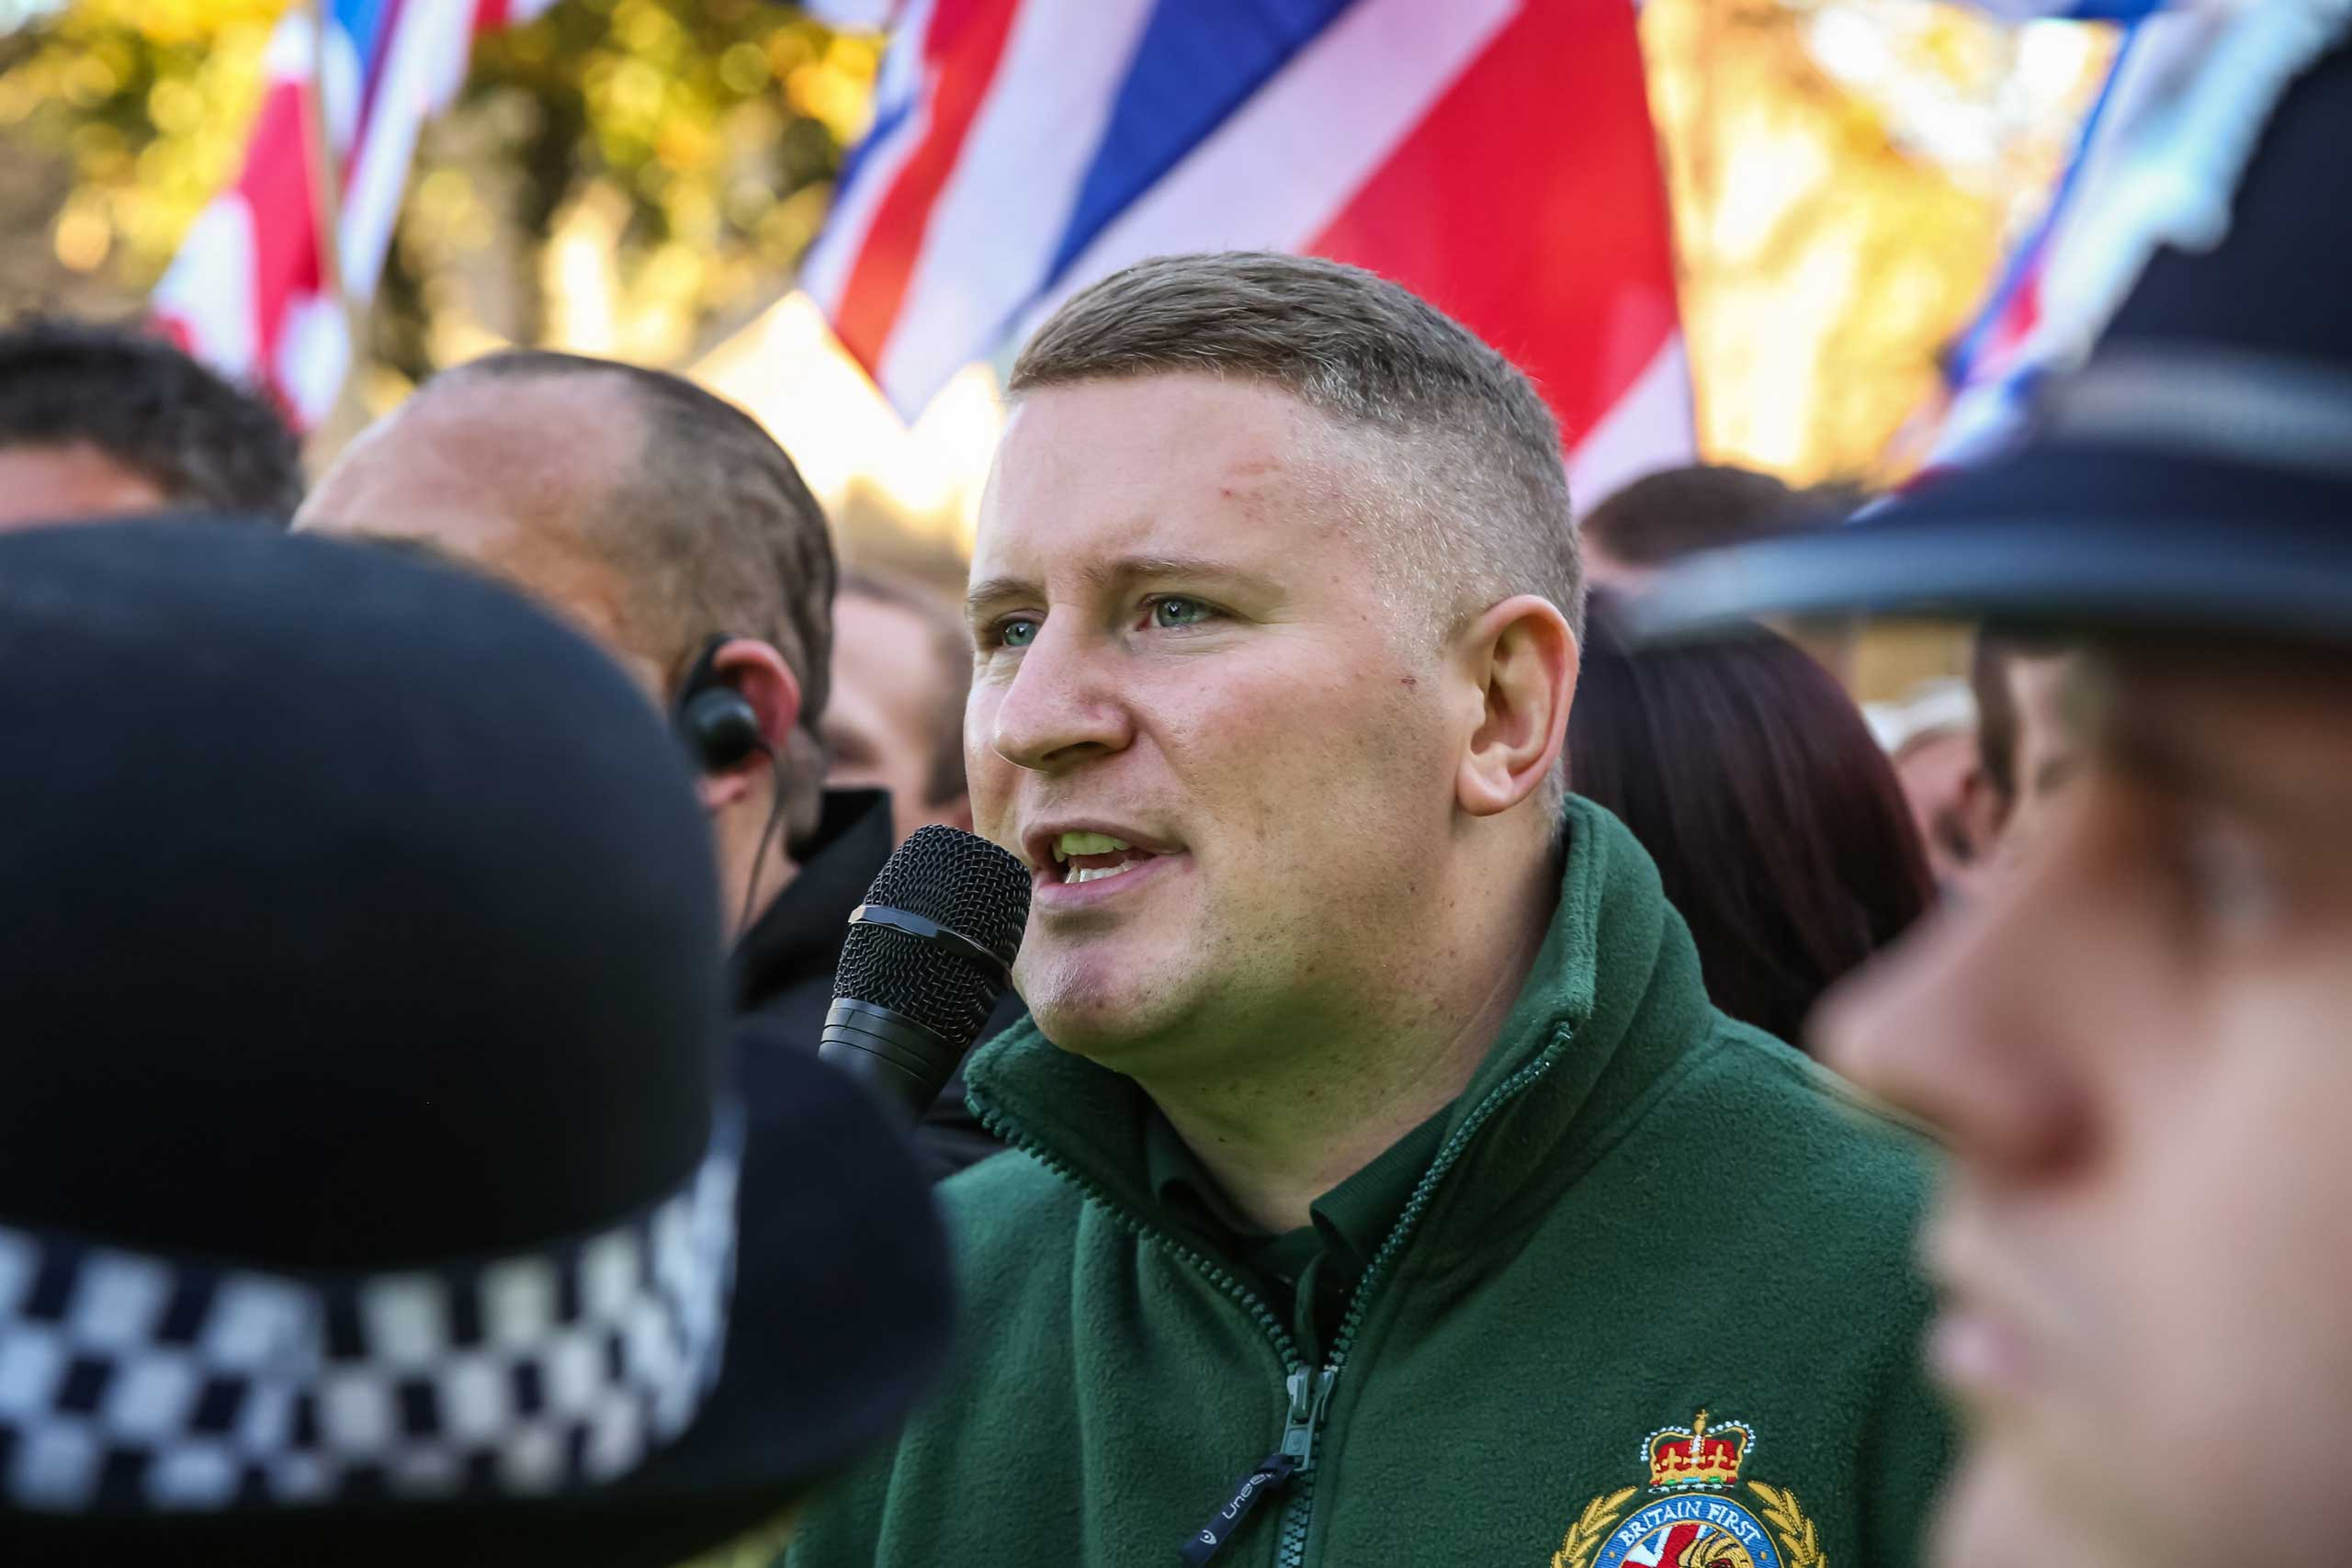 Paul Golding, leader of Britain First seen during a march in Rochester, England, Nov. 1, 2014.